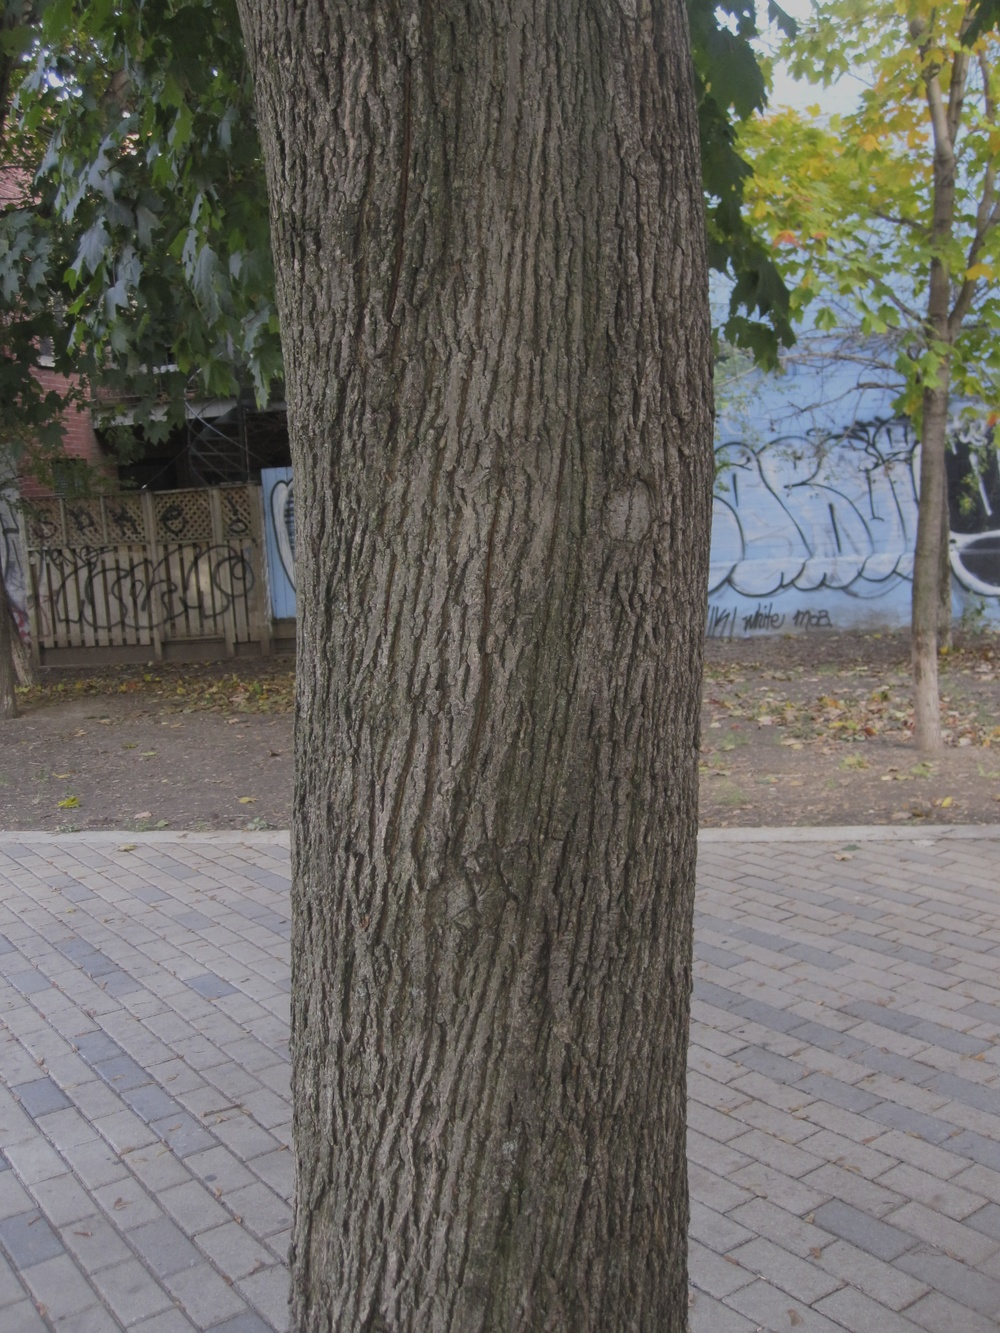 I May Have Put an Artwork on the Back of this Tree-Trunk © 2012 Maksymilian Kapelański